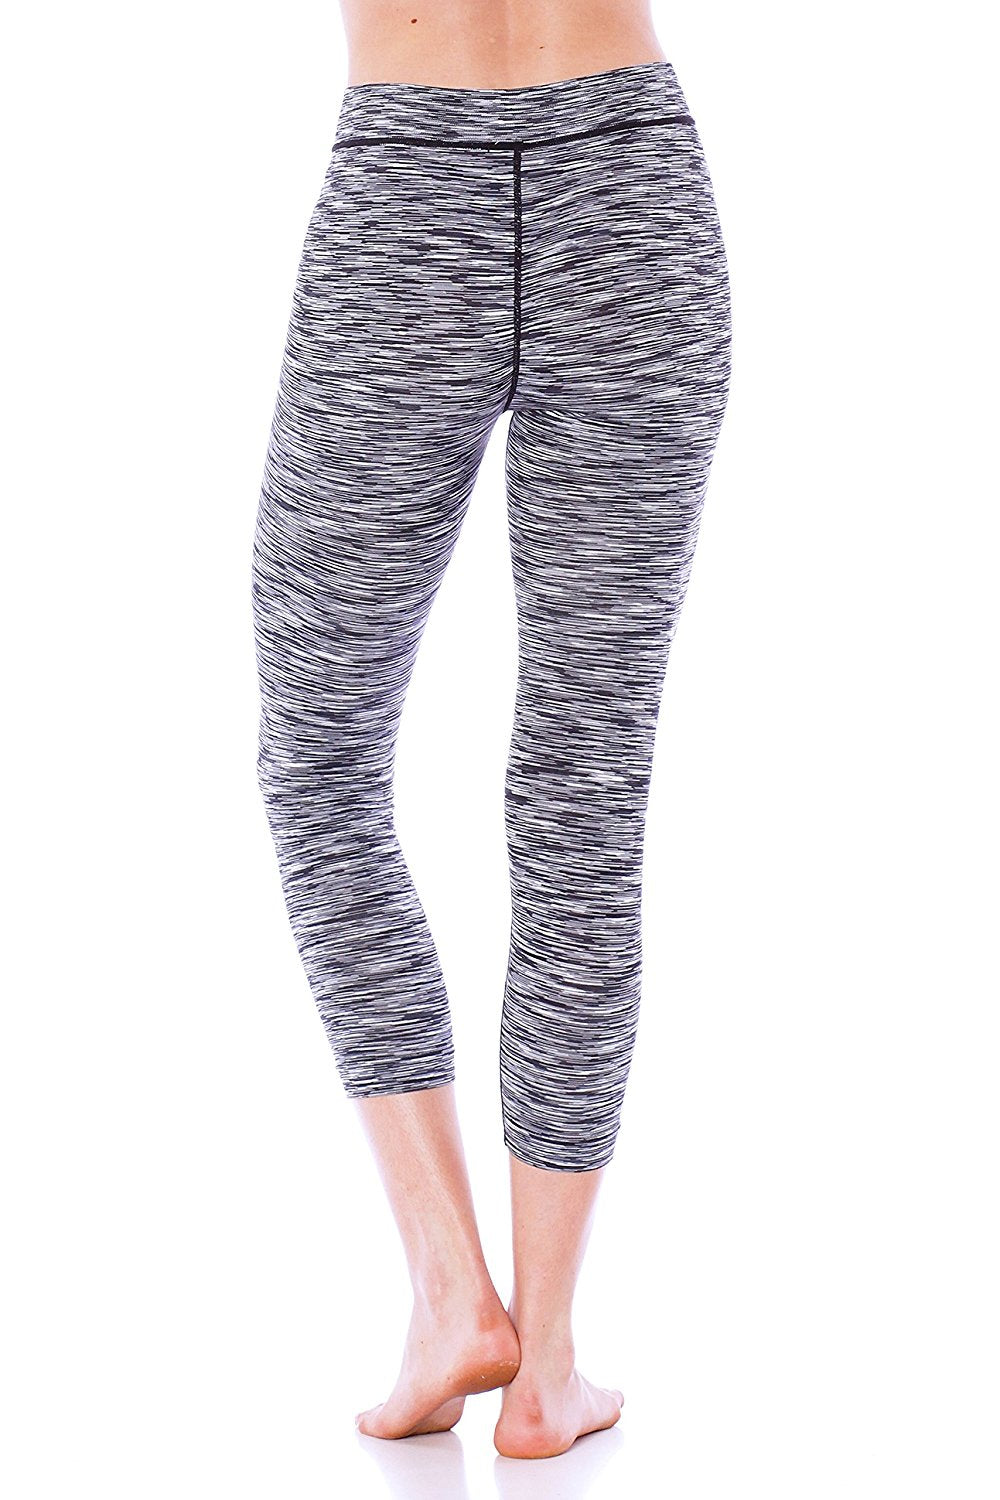 One Size Athletic Wear Pants Leggings